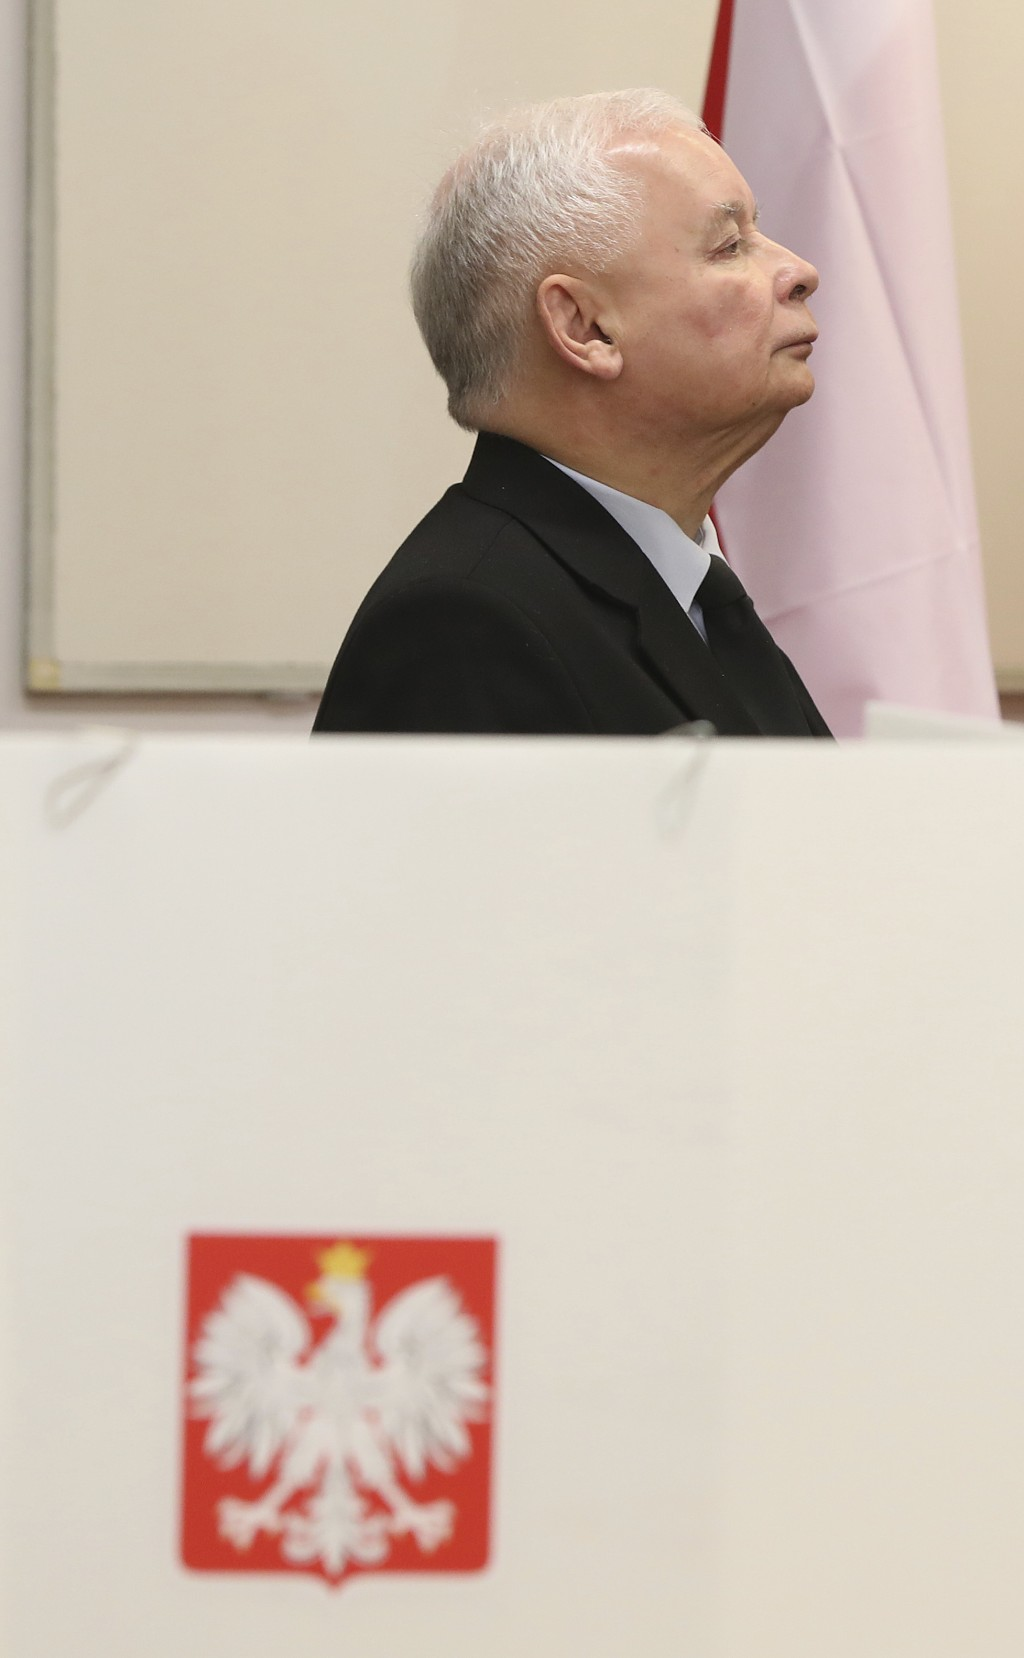 The ruling party leader Jaroslaw Kaczynski holds his ballot at a polling station in Warsaw, Poland, Sunday, Oct. 13, 2019. Poles are voting Sunday in ...